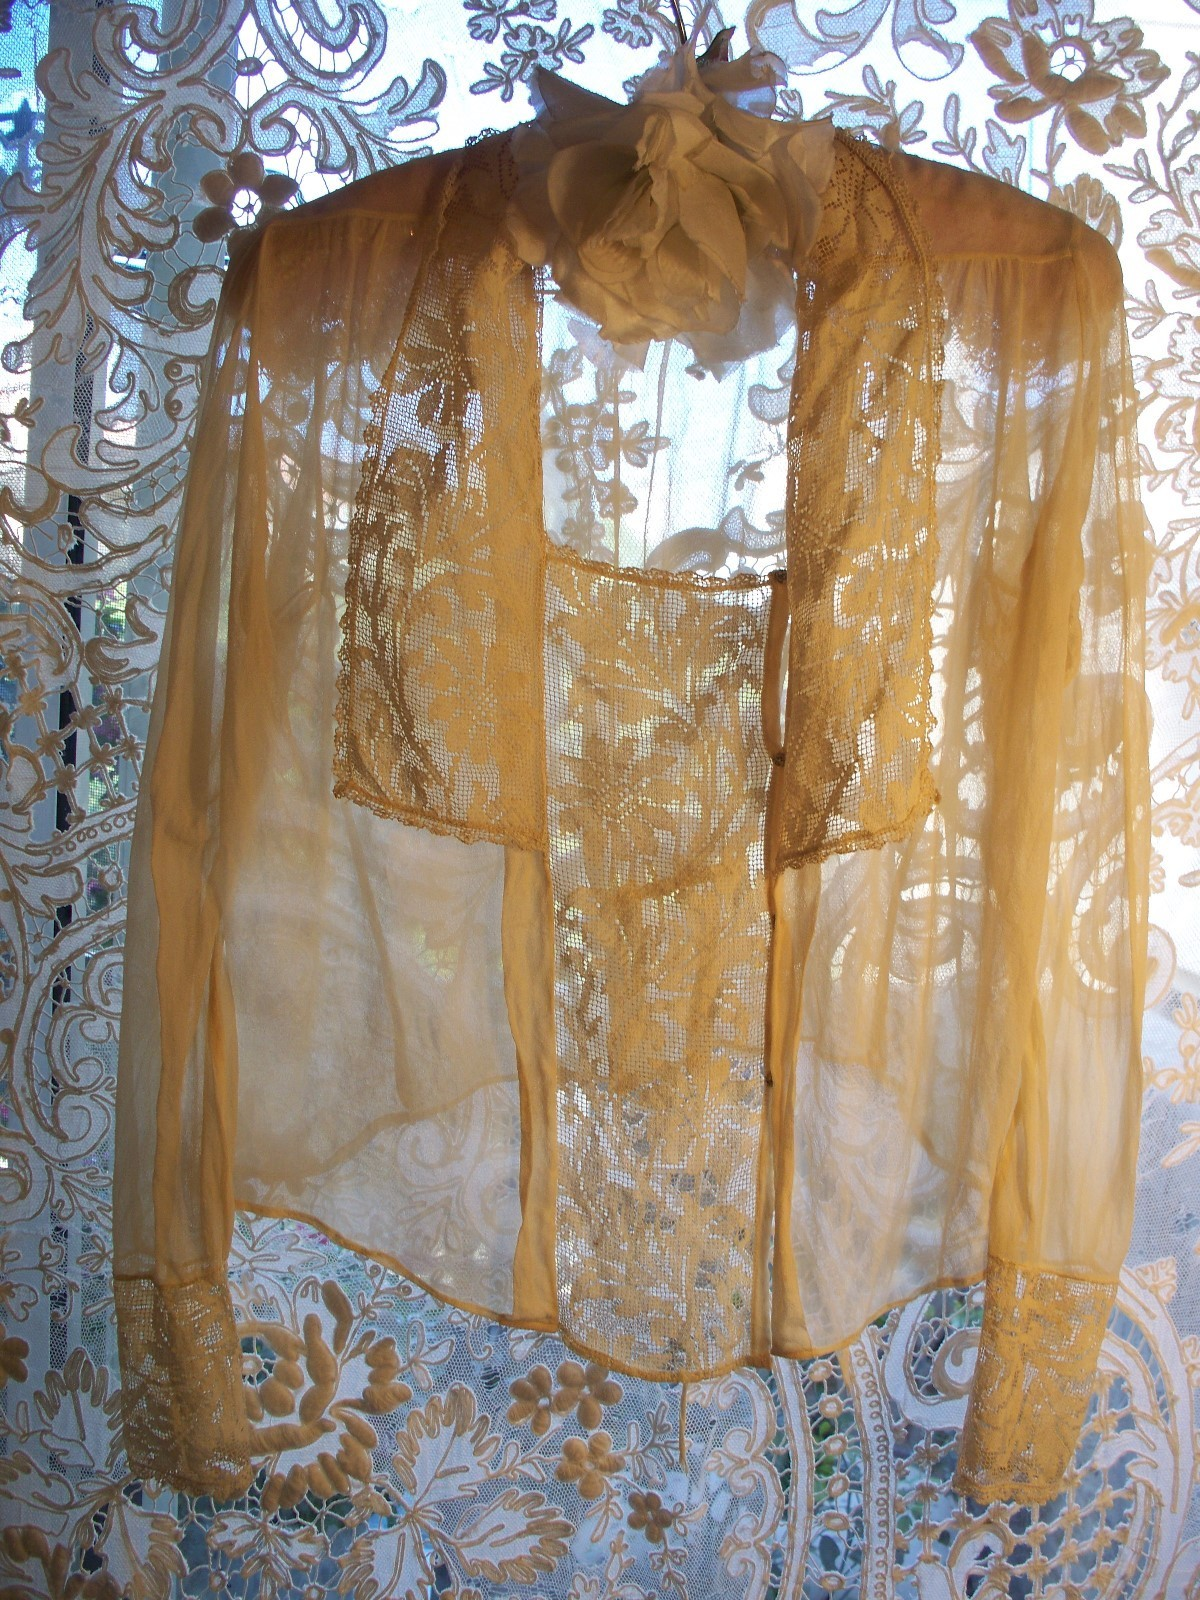 Vintage Ethereal Ecru Crepe with Lace Blouse, circa 1930's